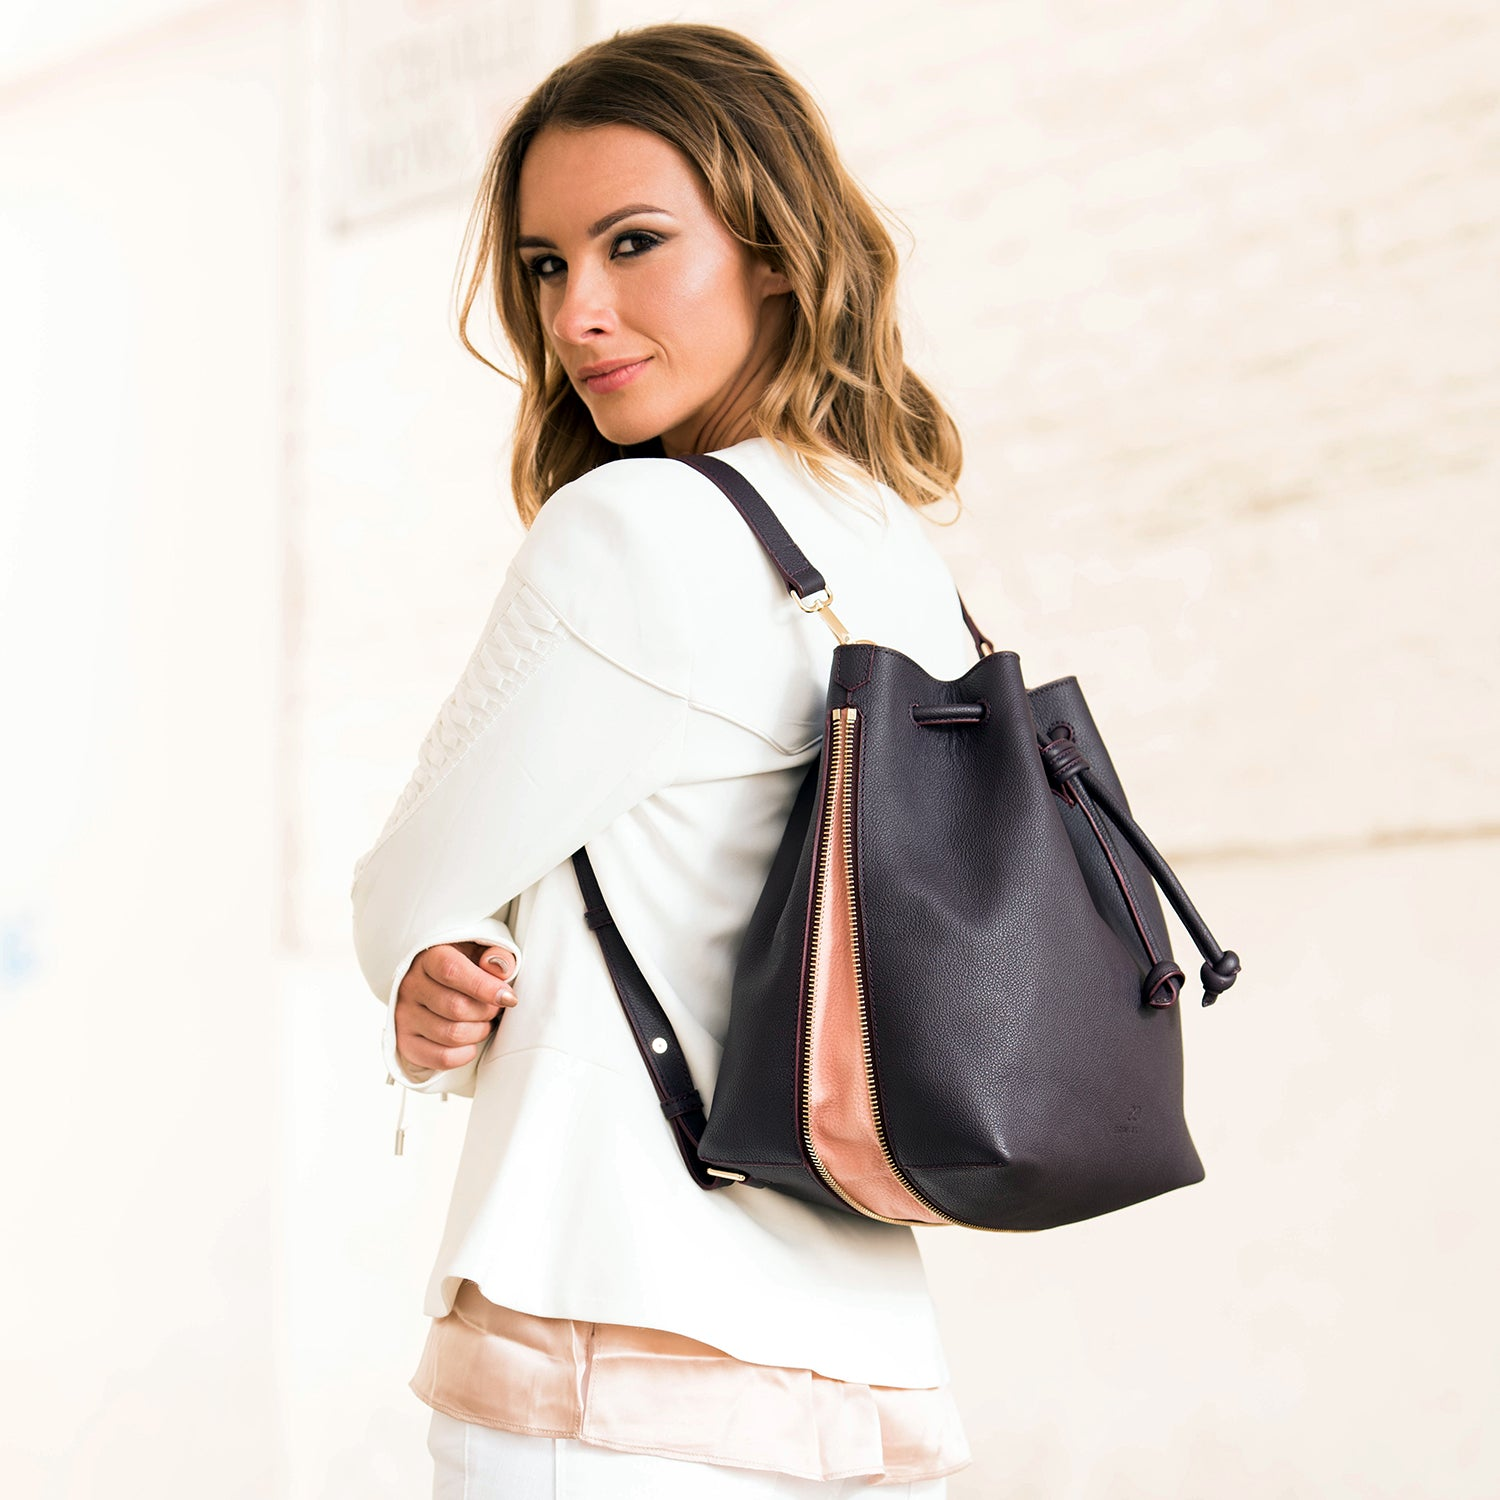 Model wearing a convertible laptop size leather bucket bag in pink as a backpack.